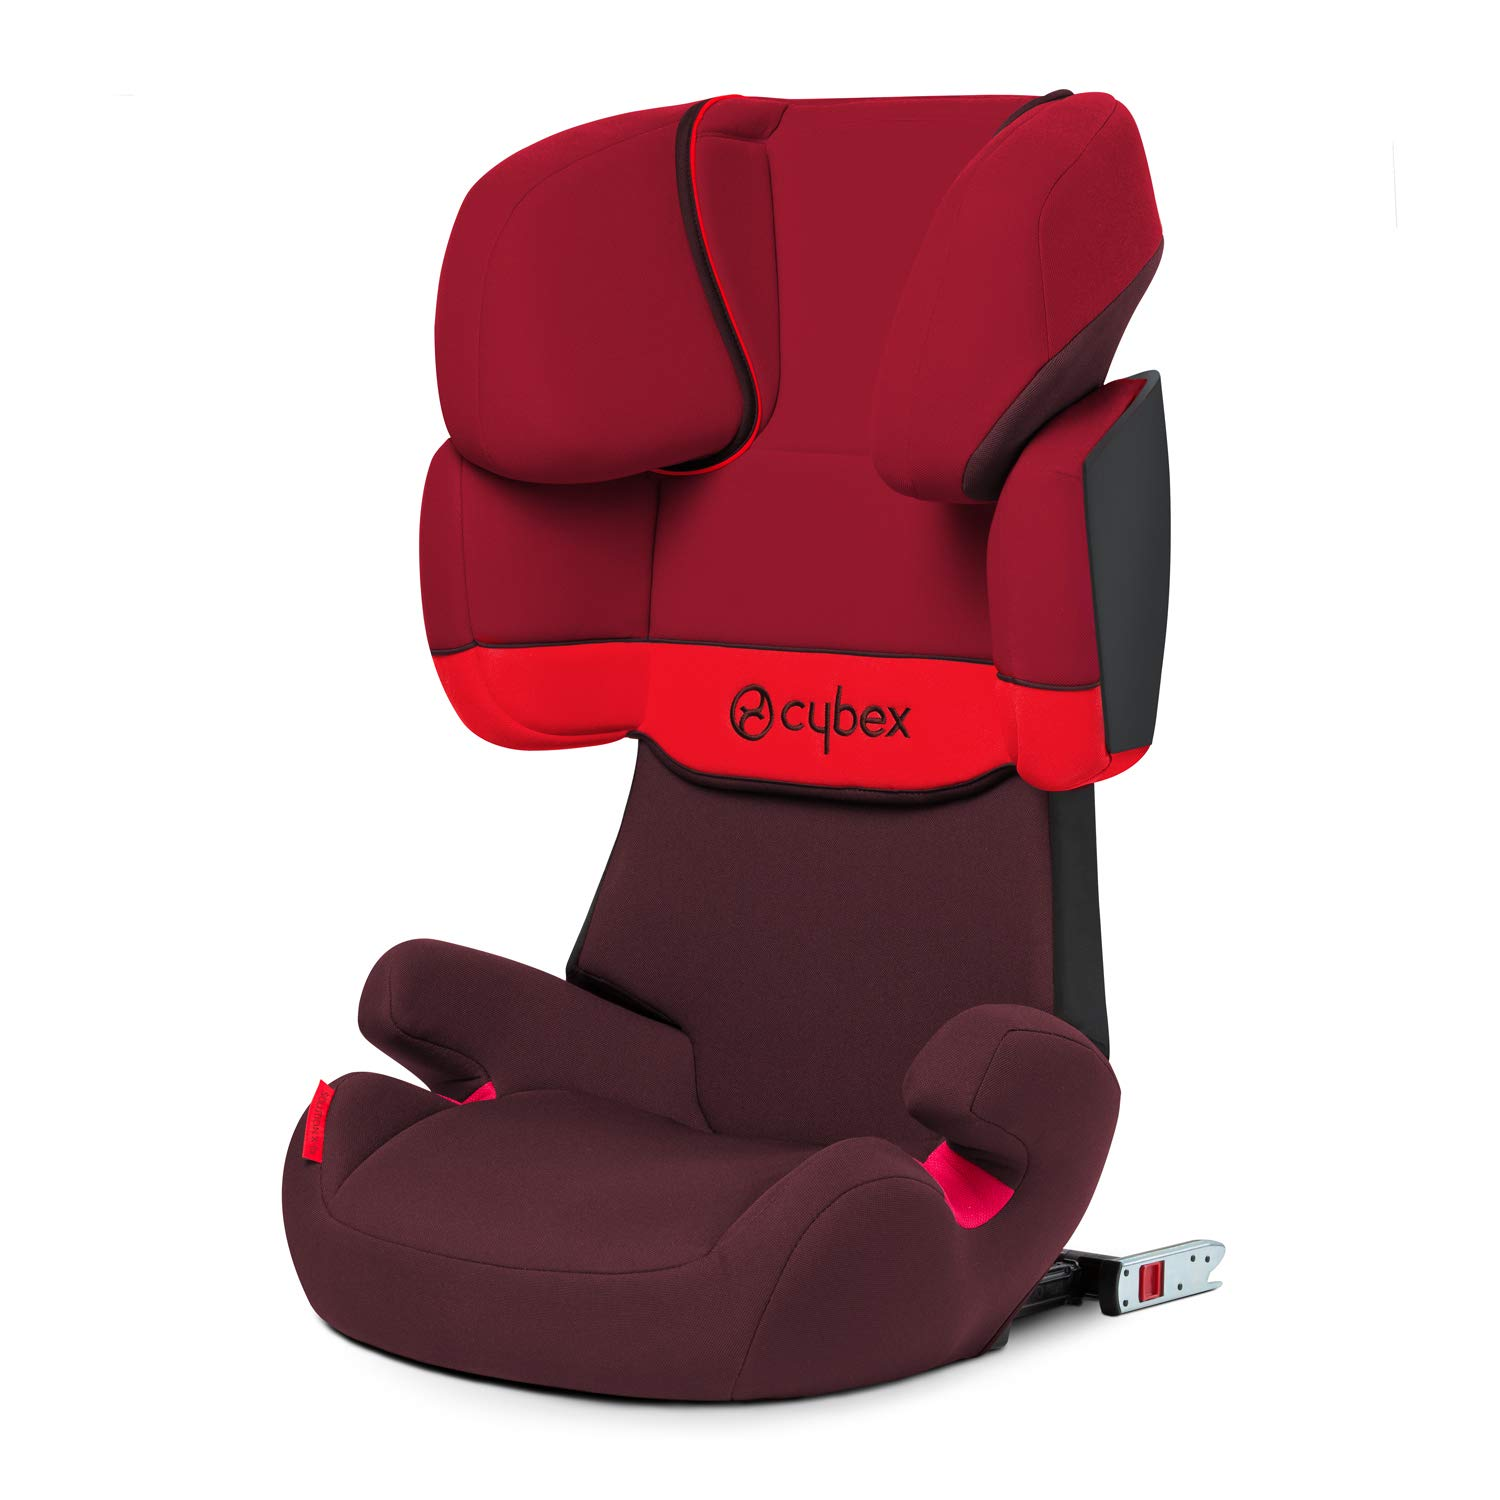 Group 2//3 12 years CYBEX Silver Solution X-Fix Childs Car Seat 15-36 kg For Cars with and without ISOFIX Cobblestone From approx 3 to approx